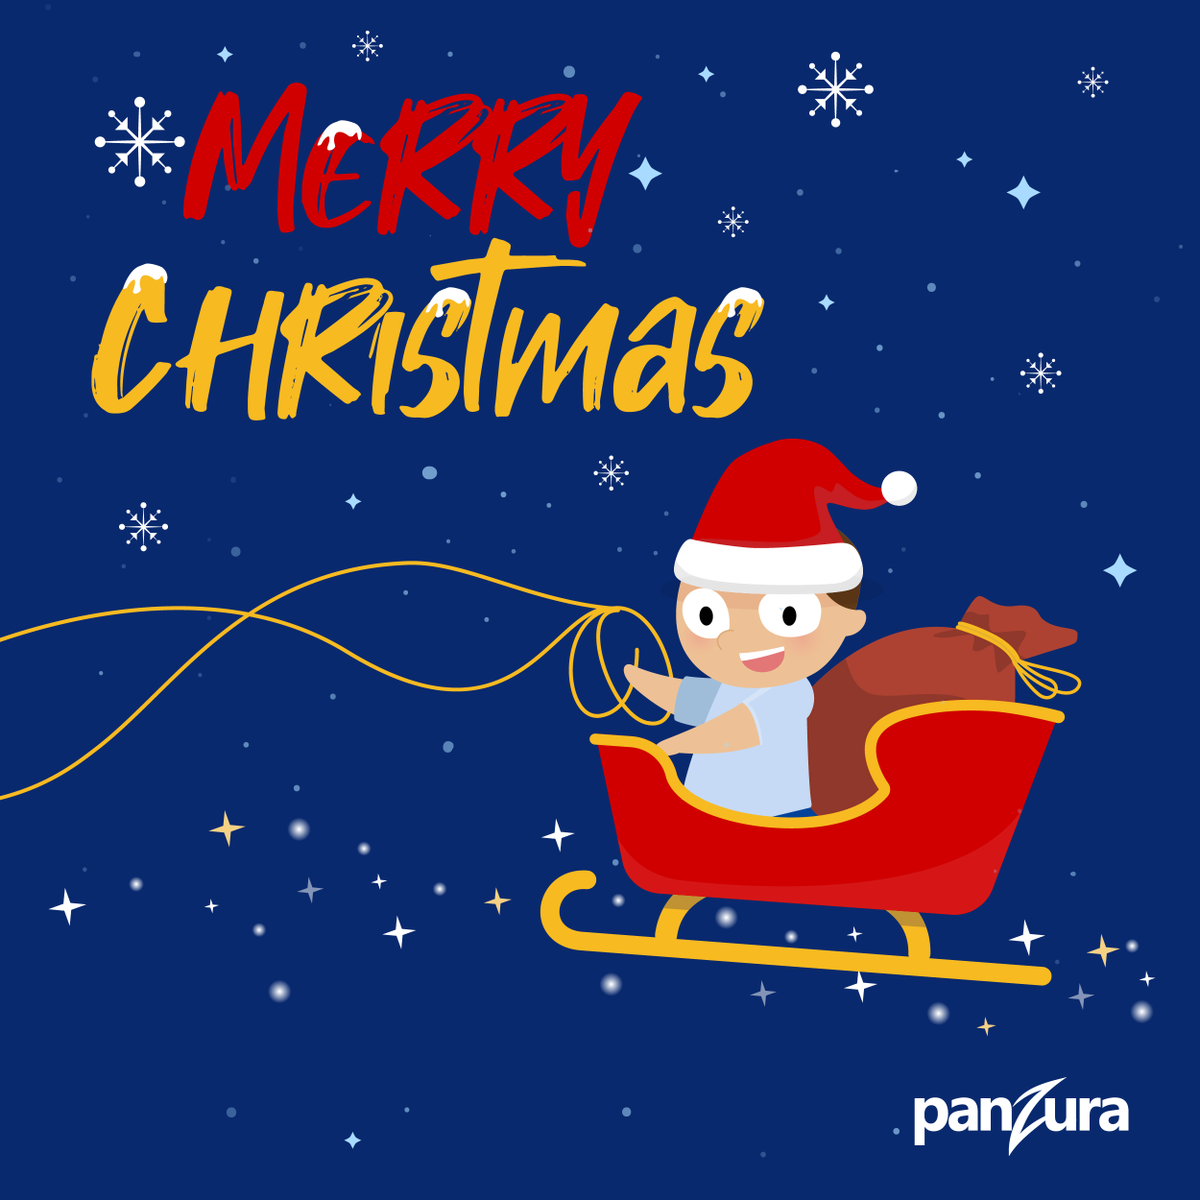 The Panzura crew wishes you and yours a very merry Christmas! 🎅 🎄 https://t.co/kq8mDnFjI8